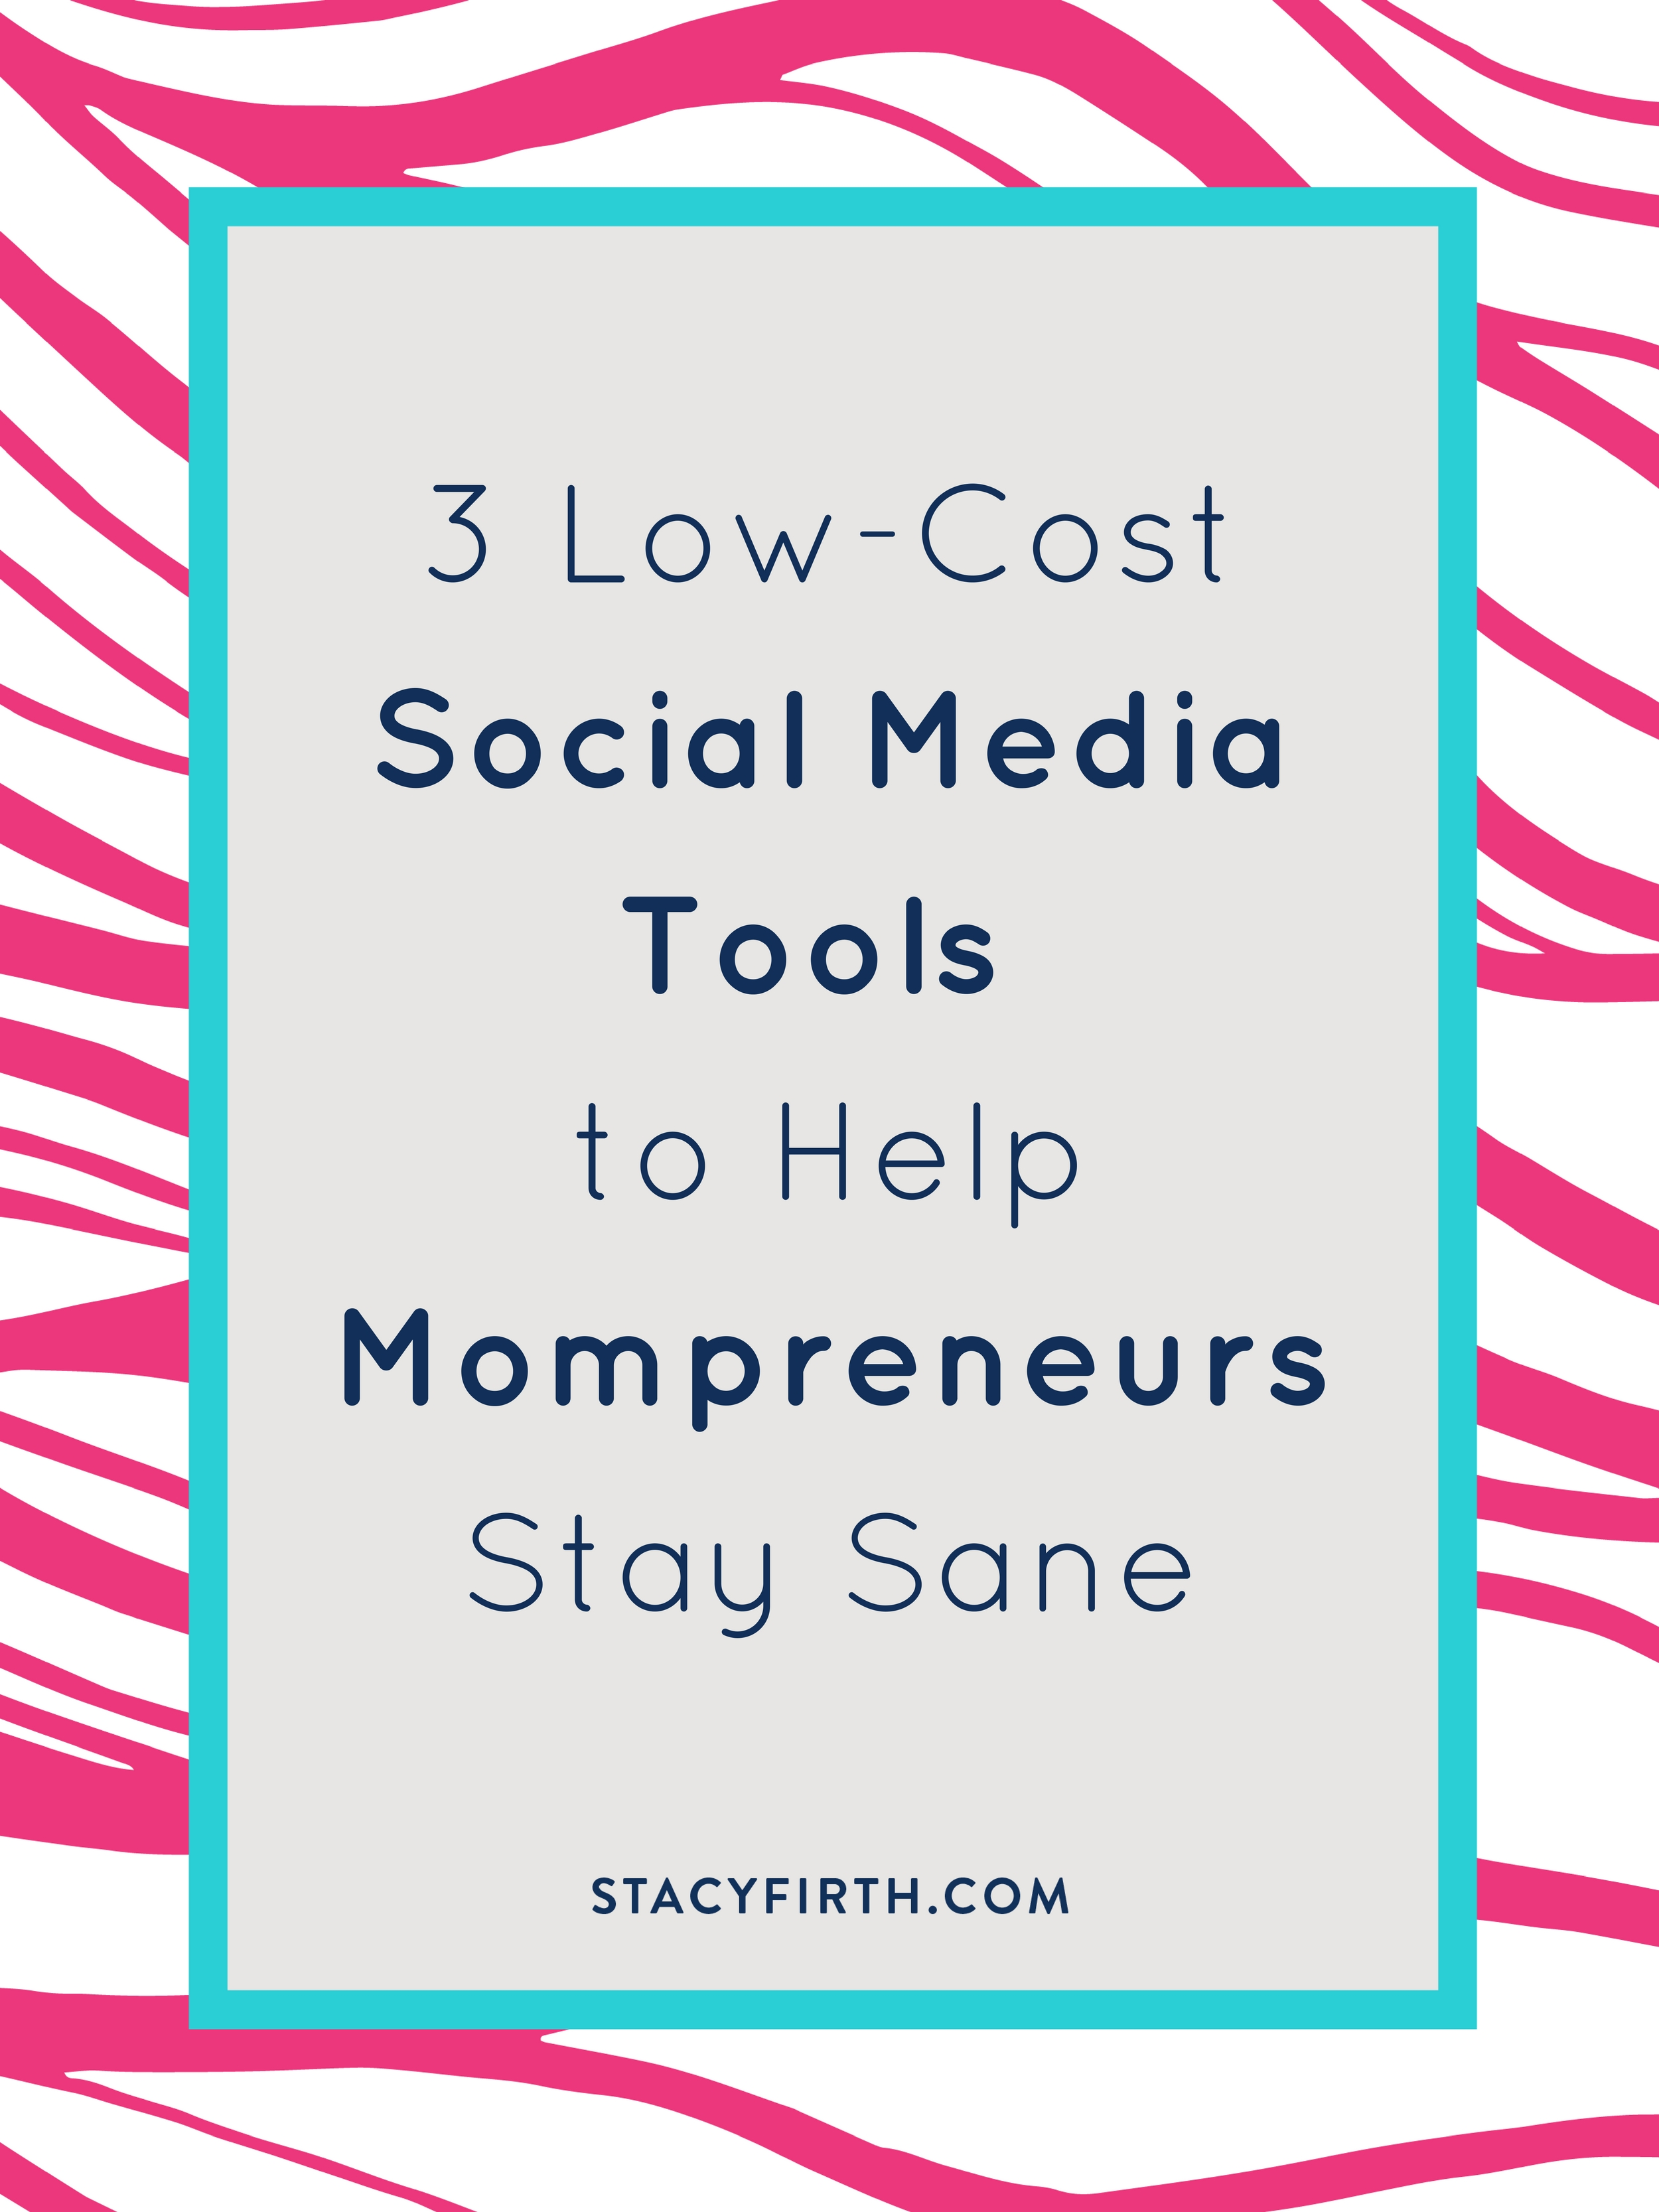 Free and Low-Cost Social Media Tools for Mompreneurs